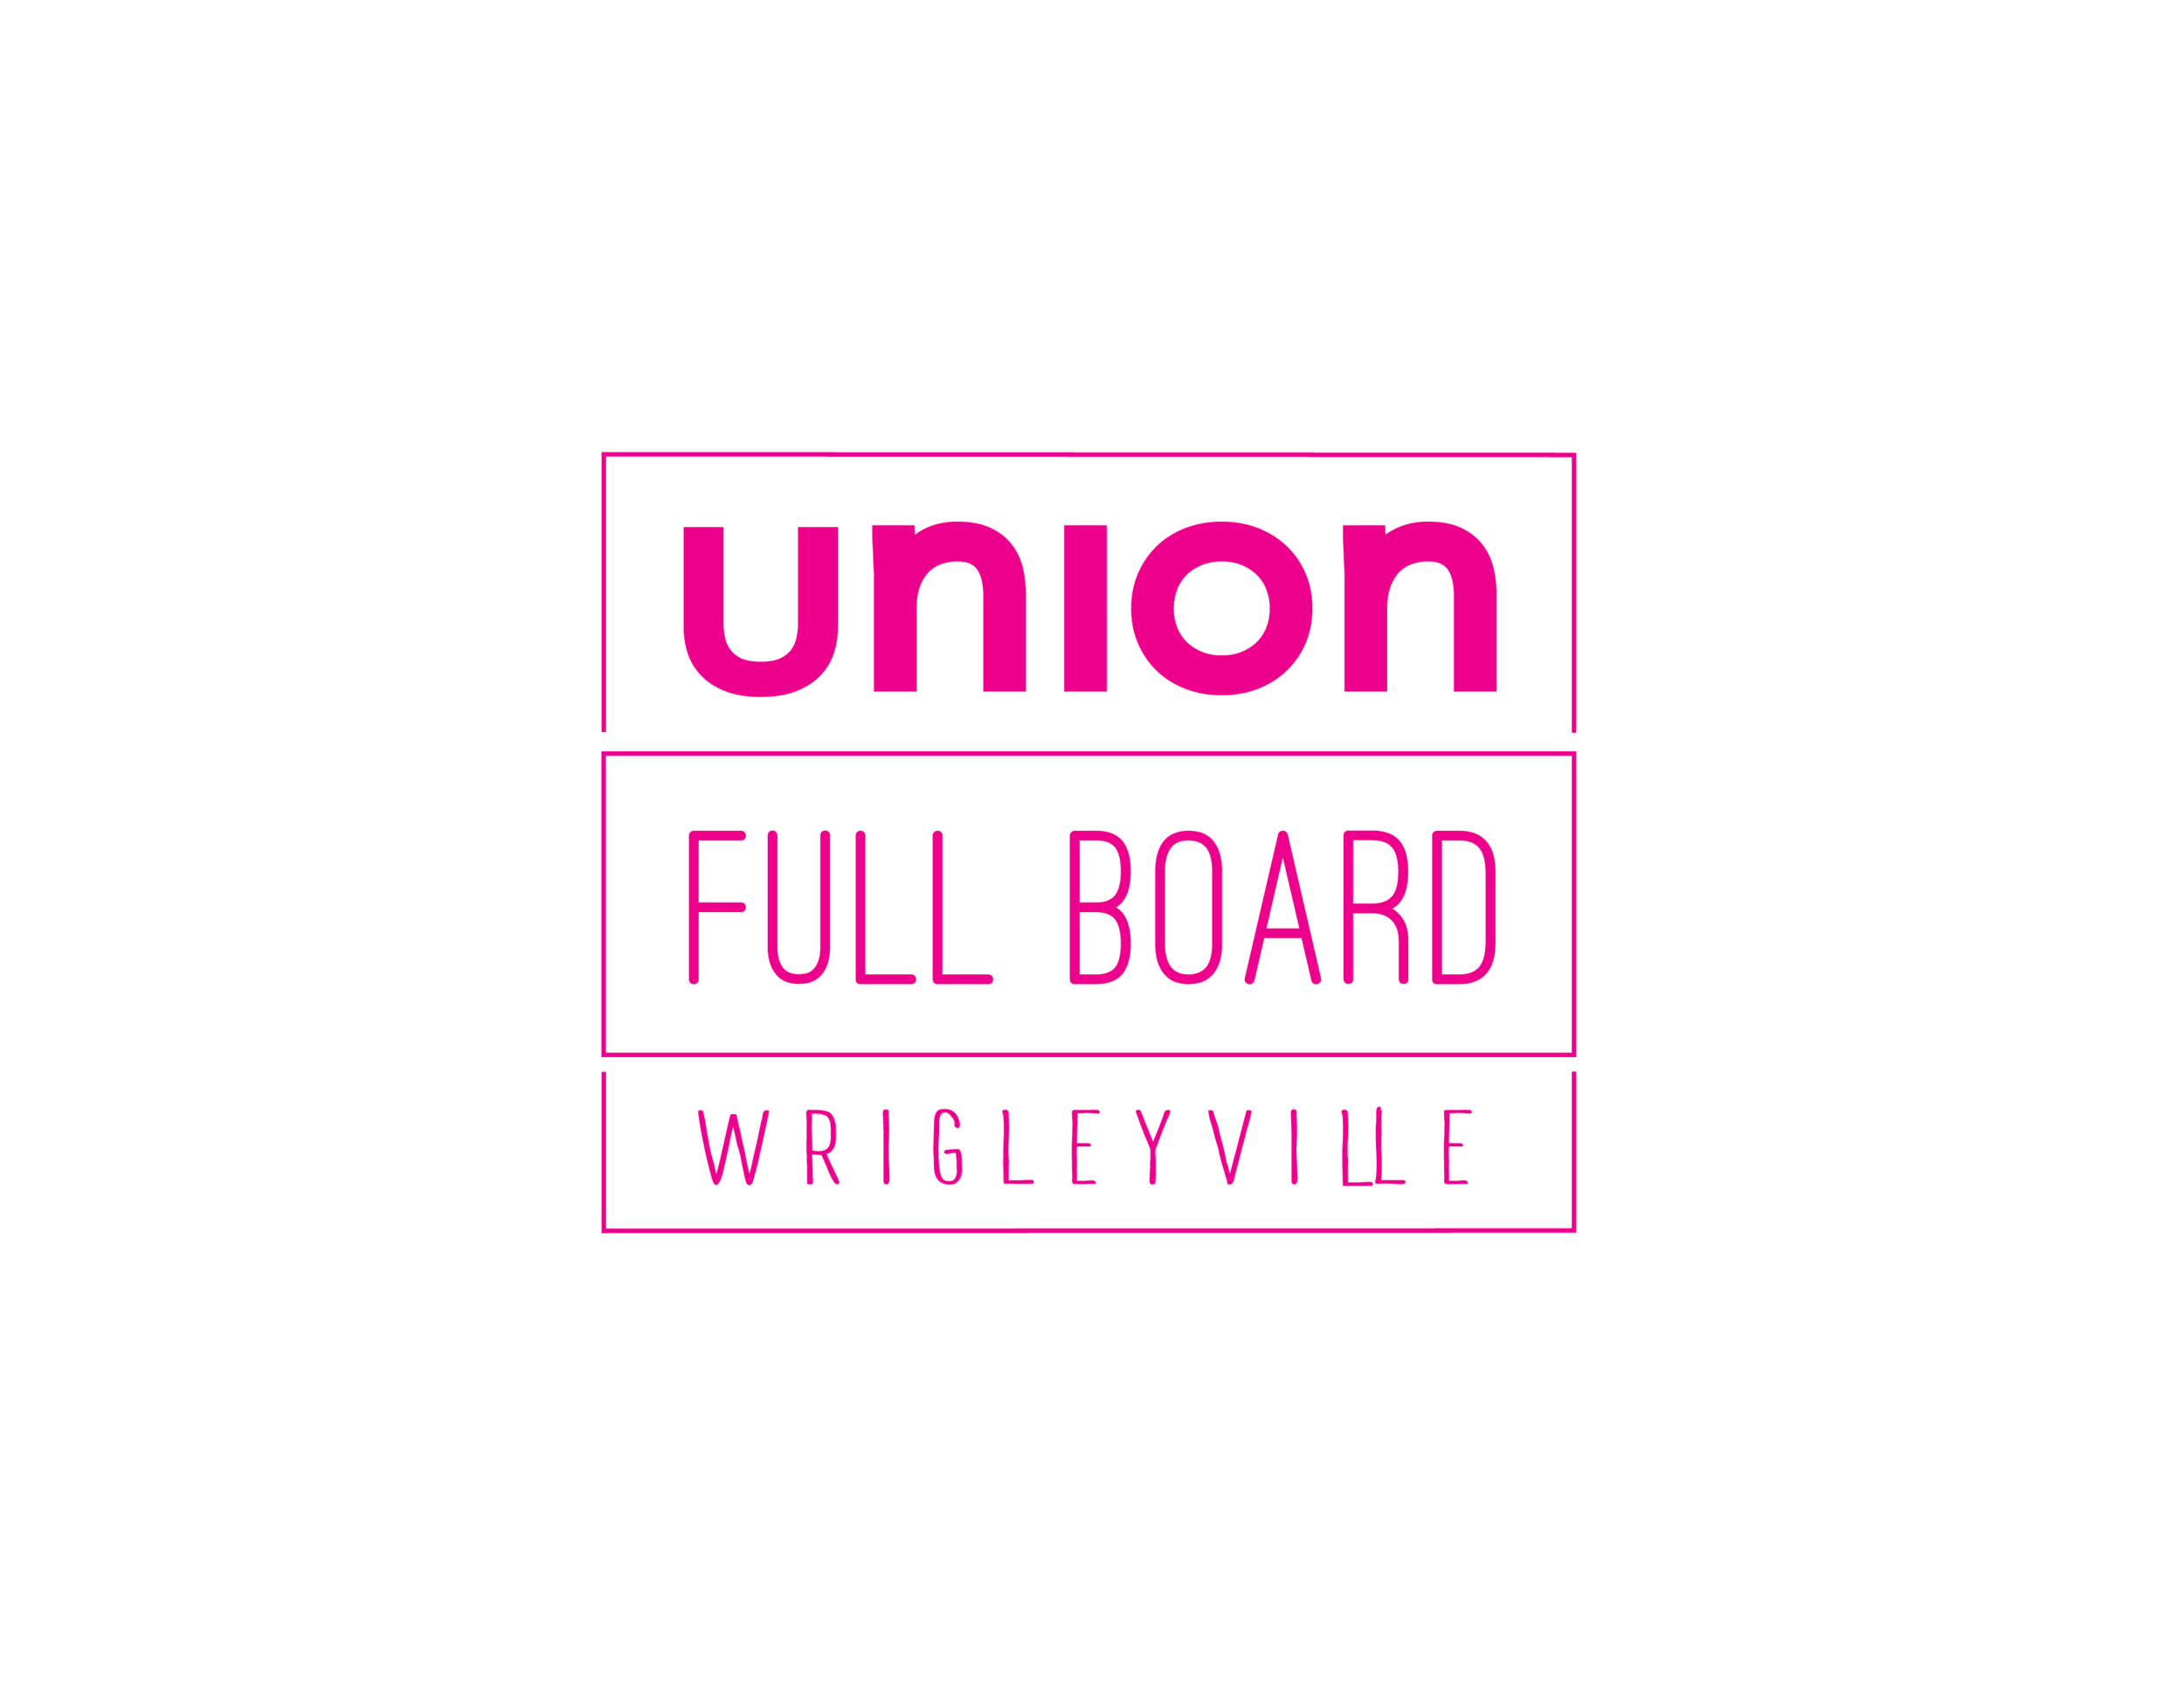 Union Full Board Logo_Union Full Board Logo.png